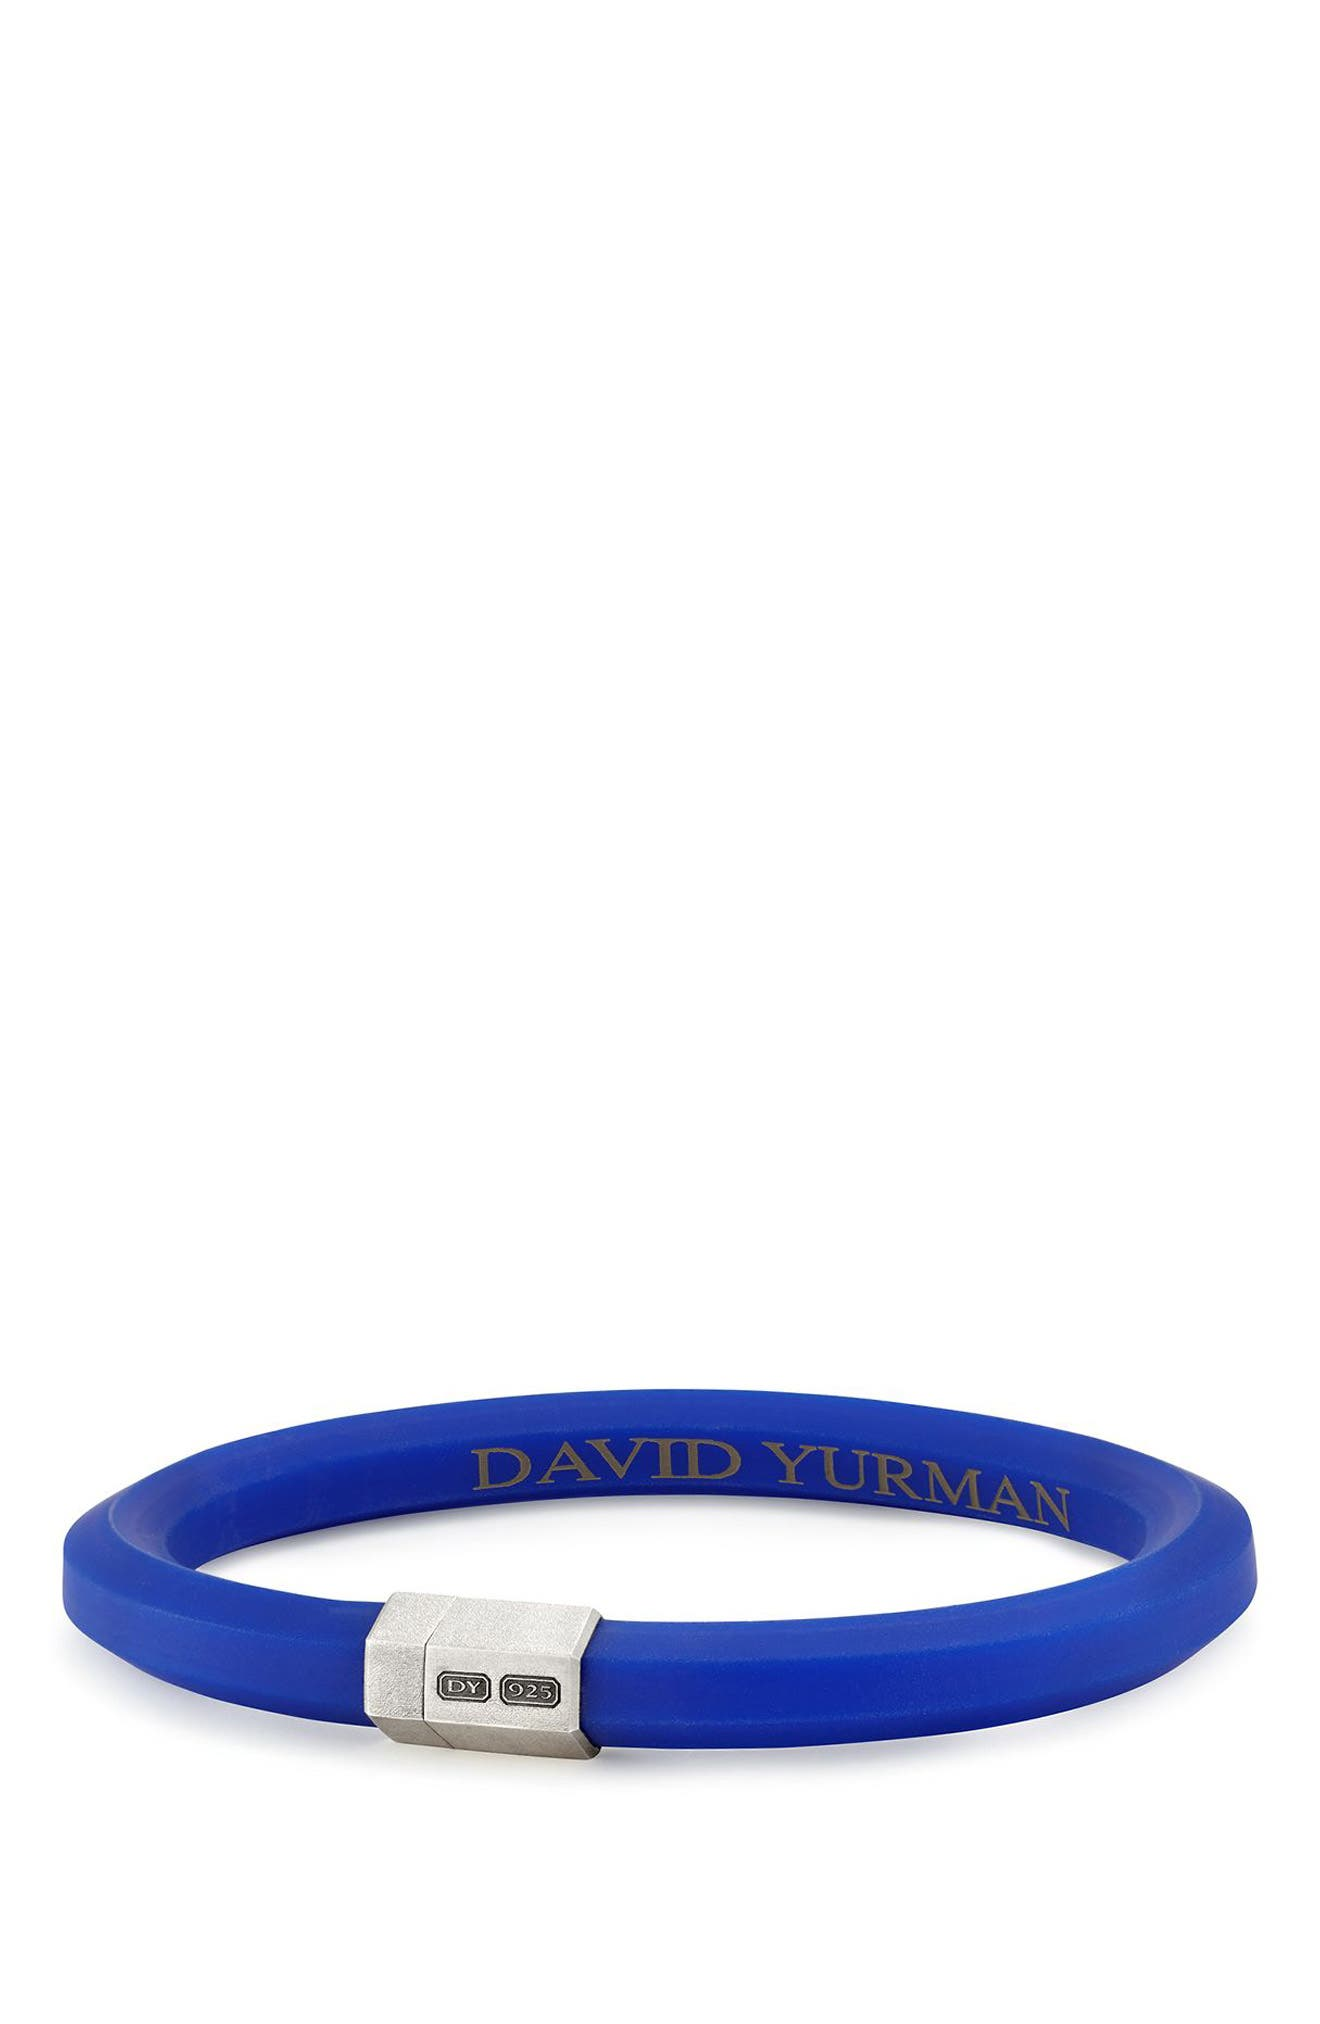 David Yurman Streamline Rubber ID Bracelet in Black